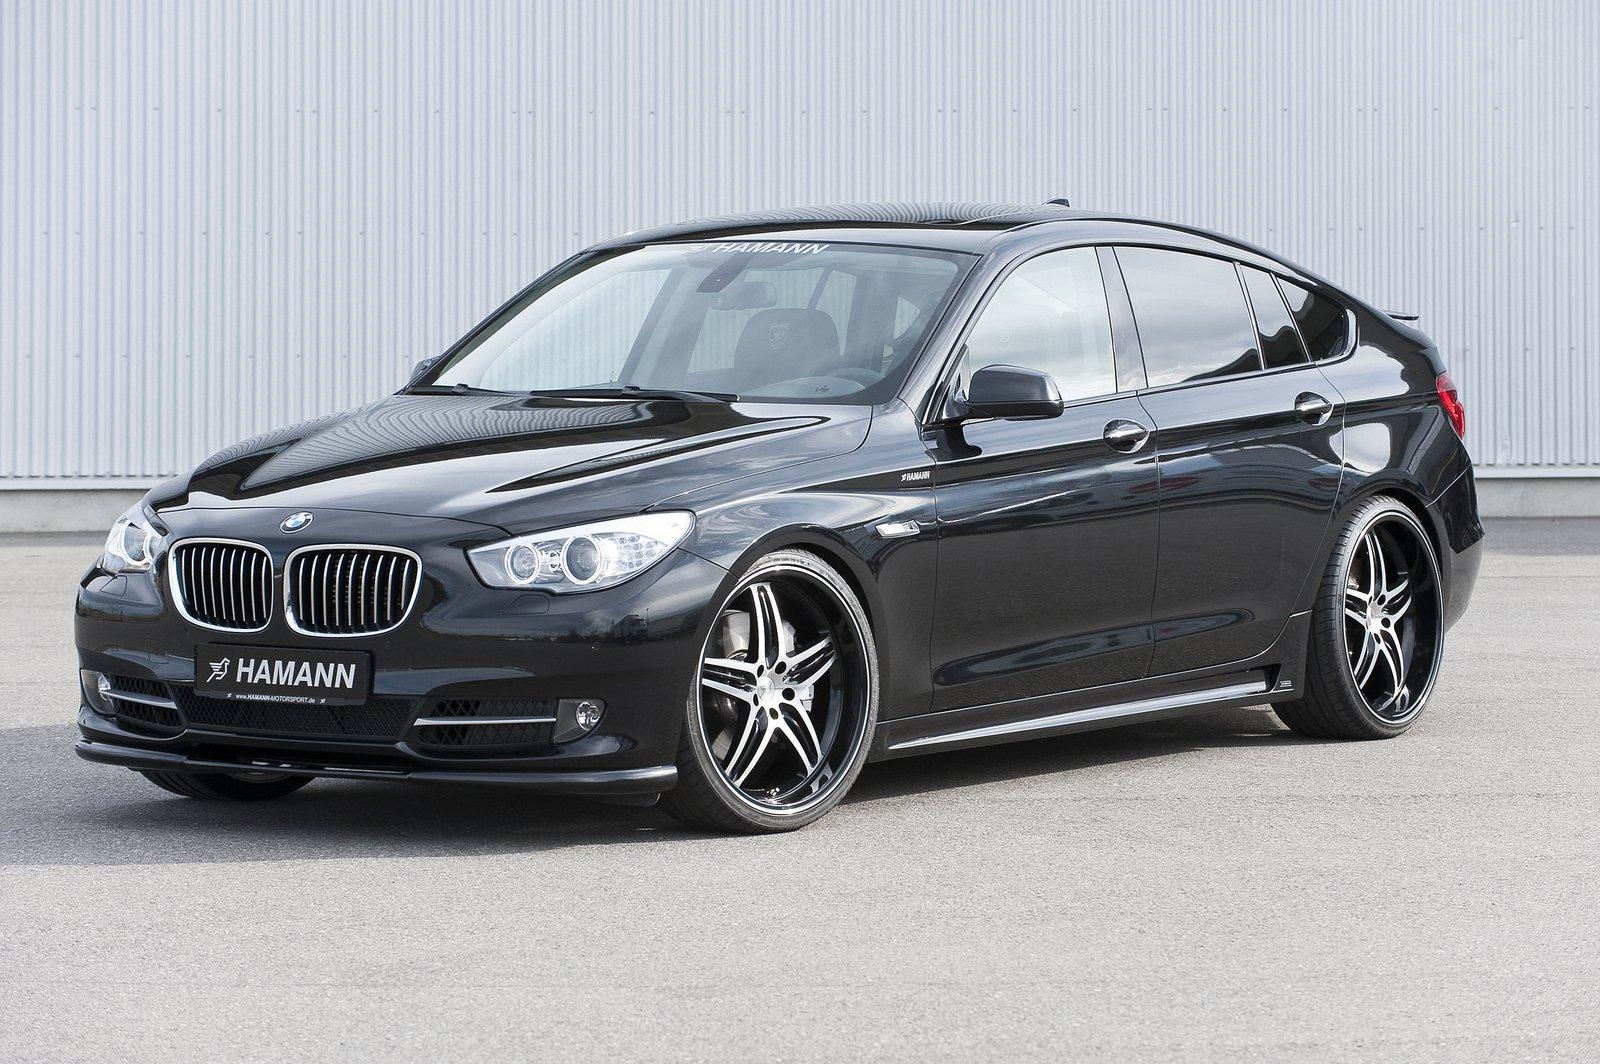 Hamann Bmw 5 Series Gt Revealed Automotive Addicts